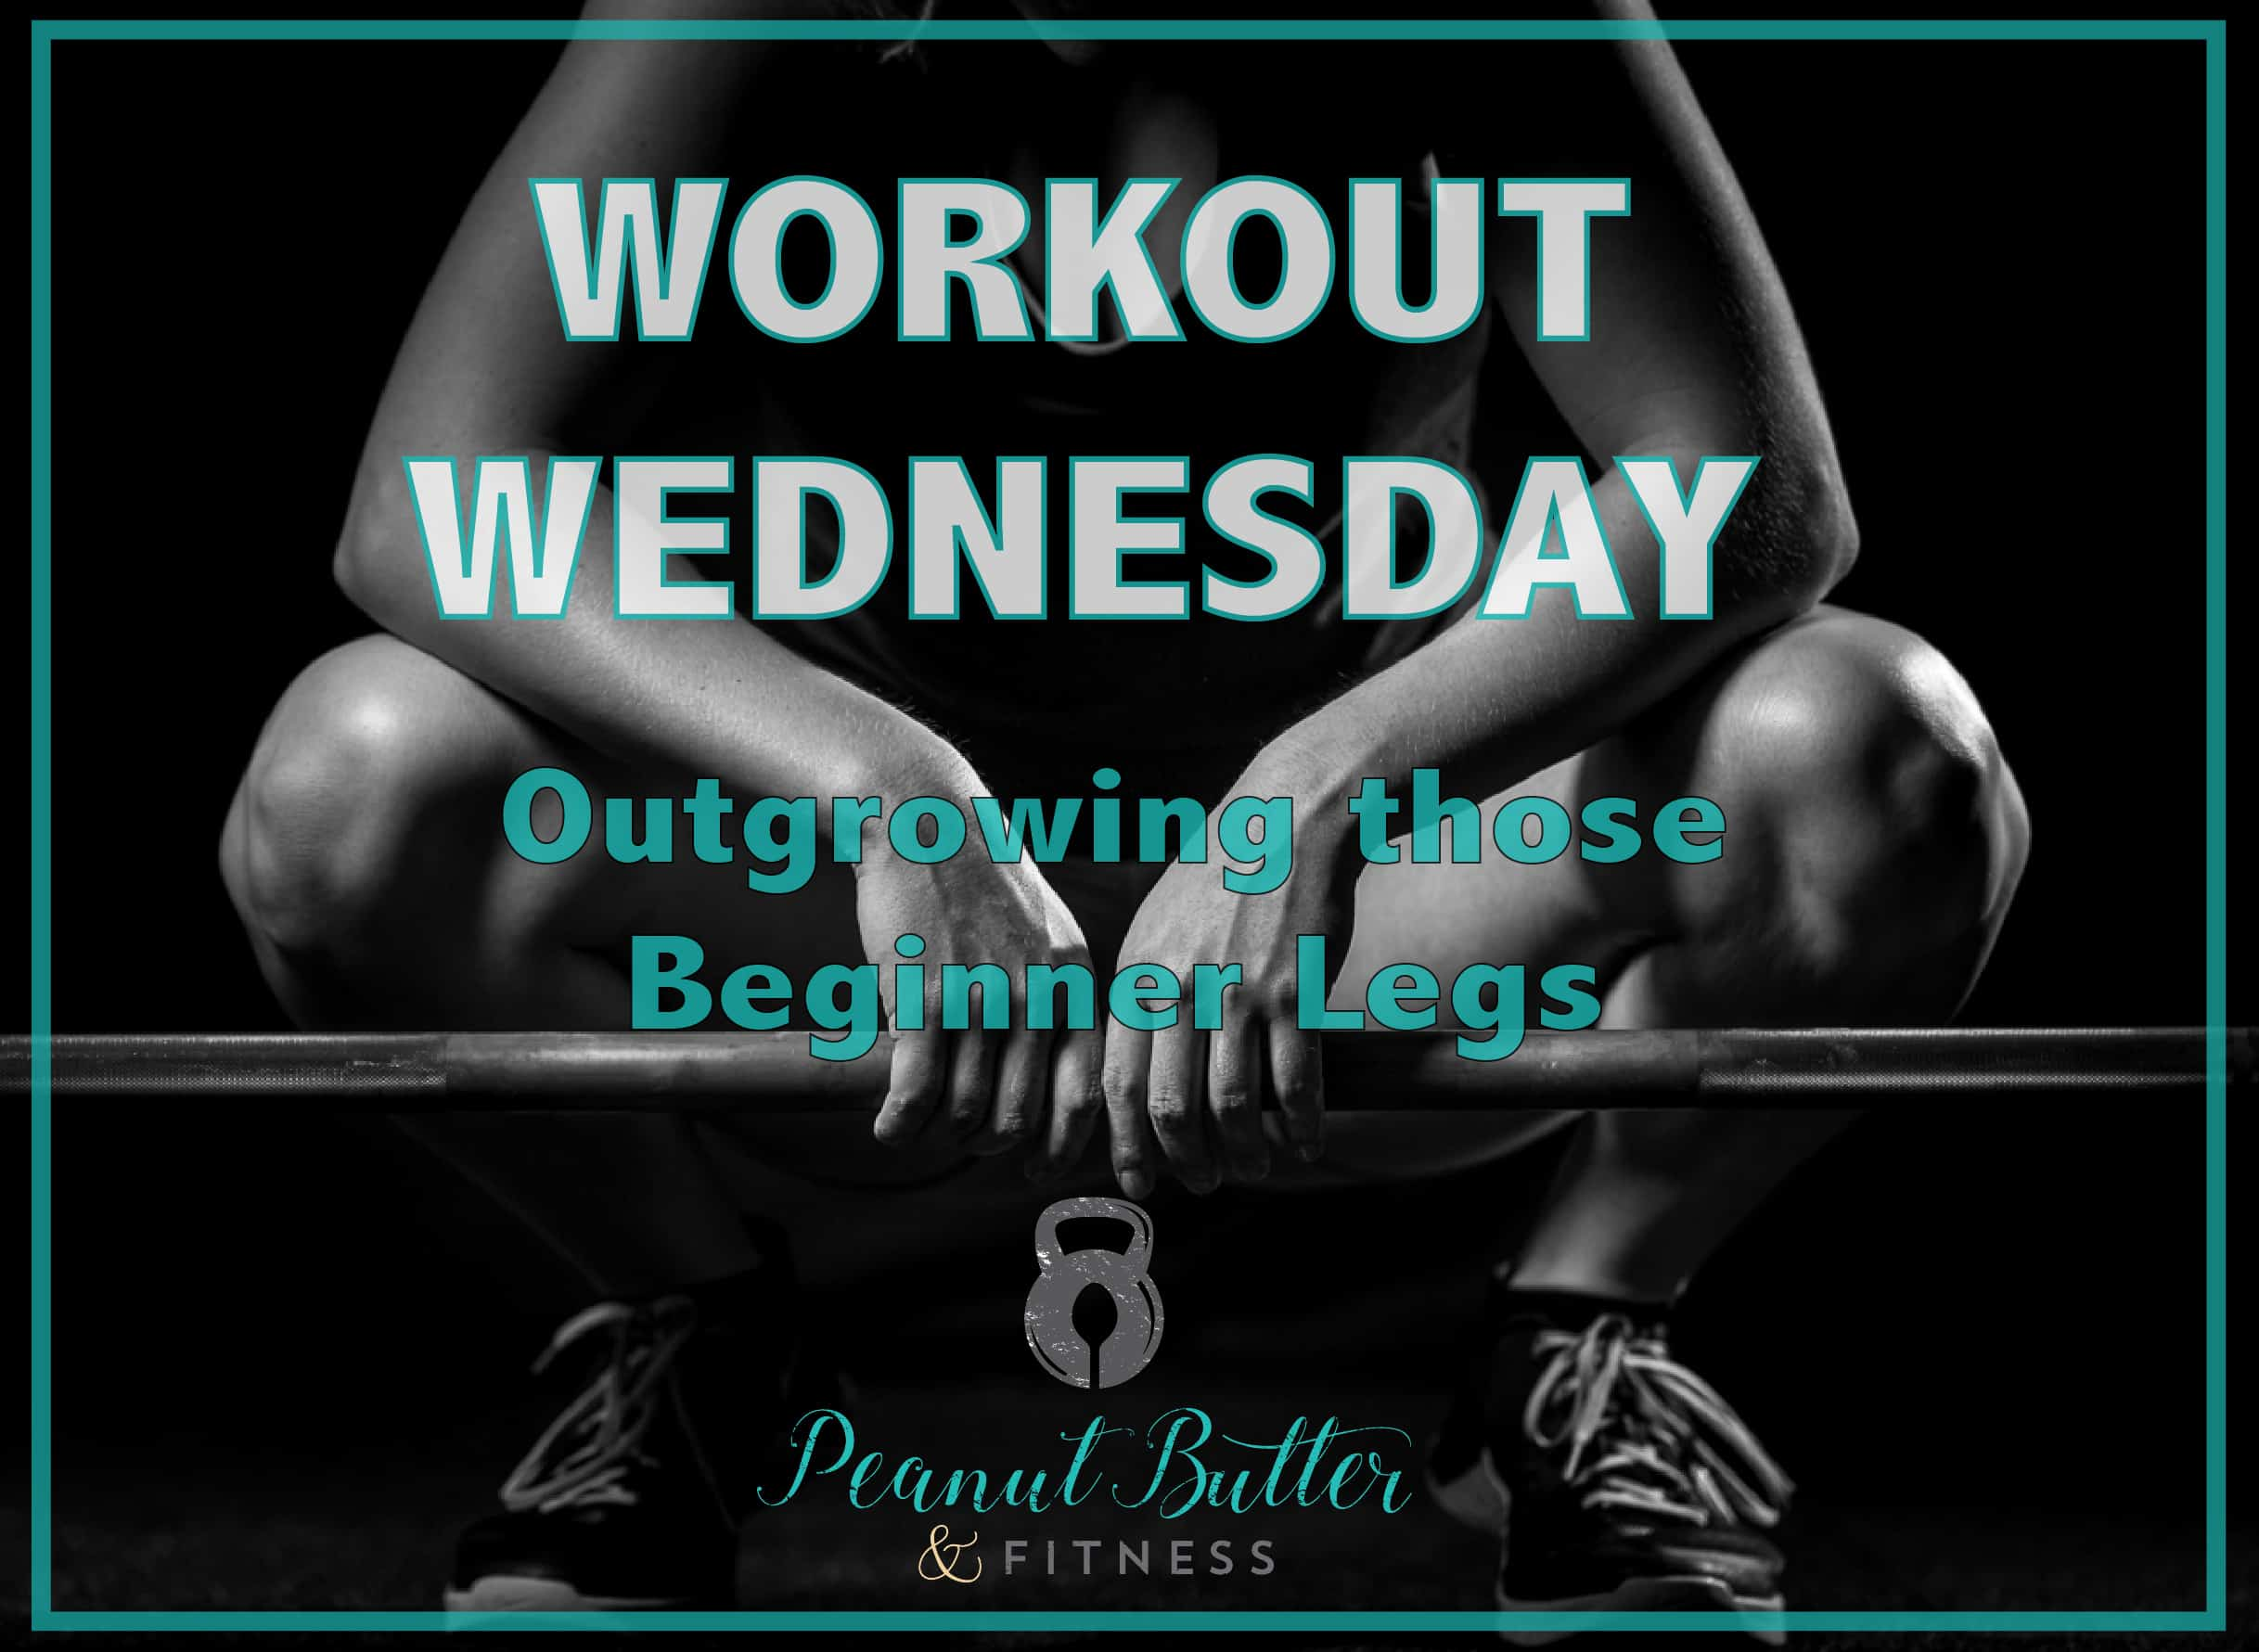 Workout wednesday - outgrow those beginner legs-01